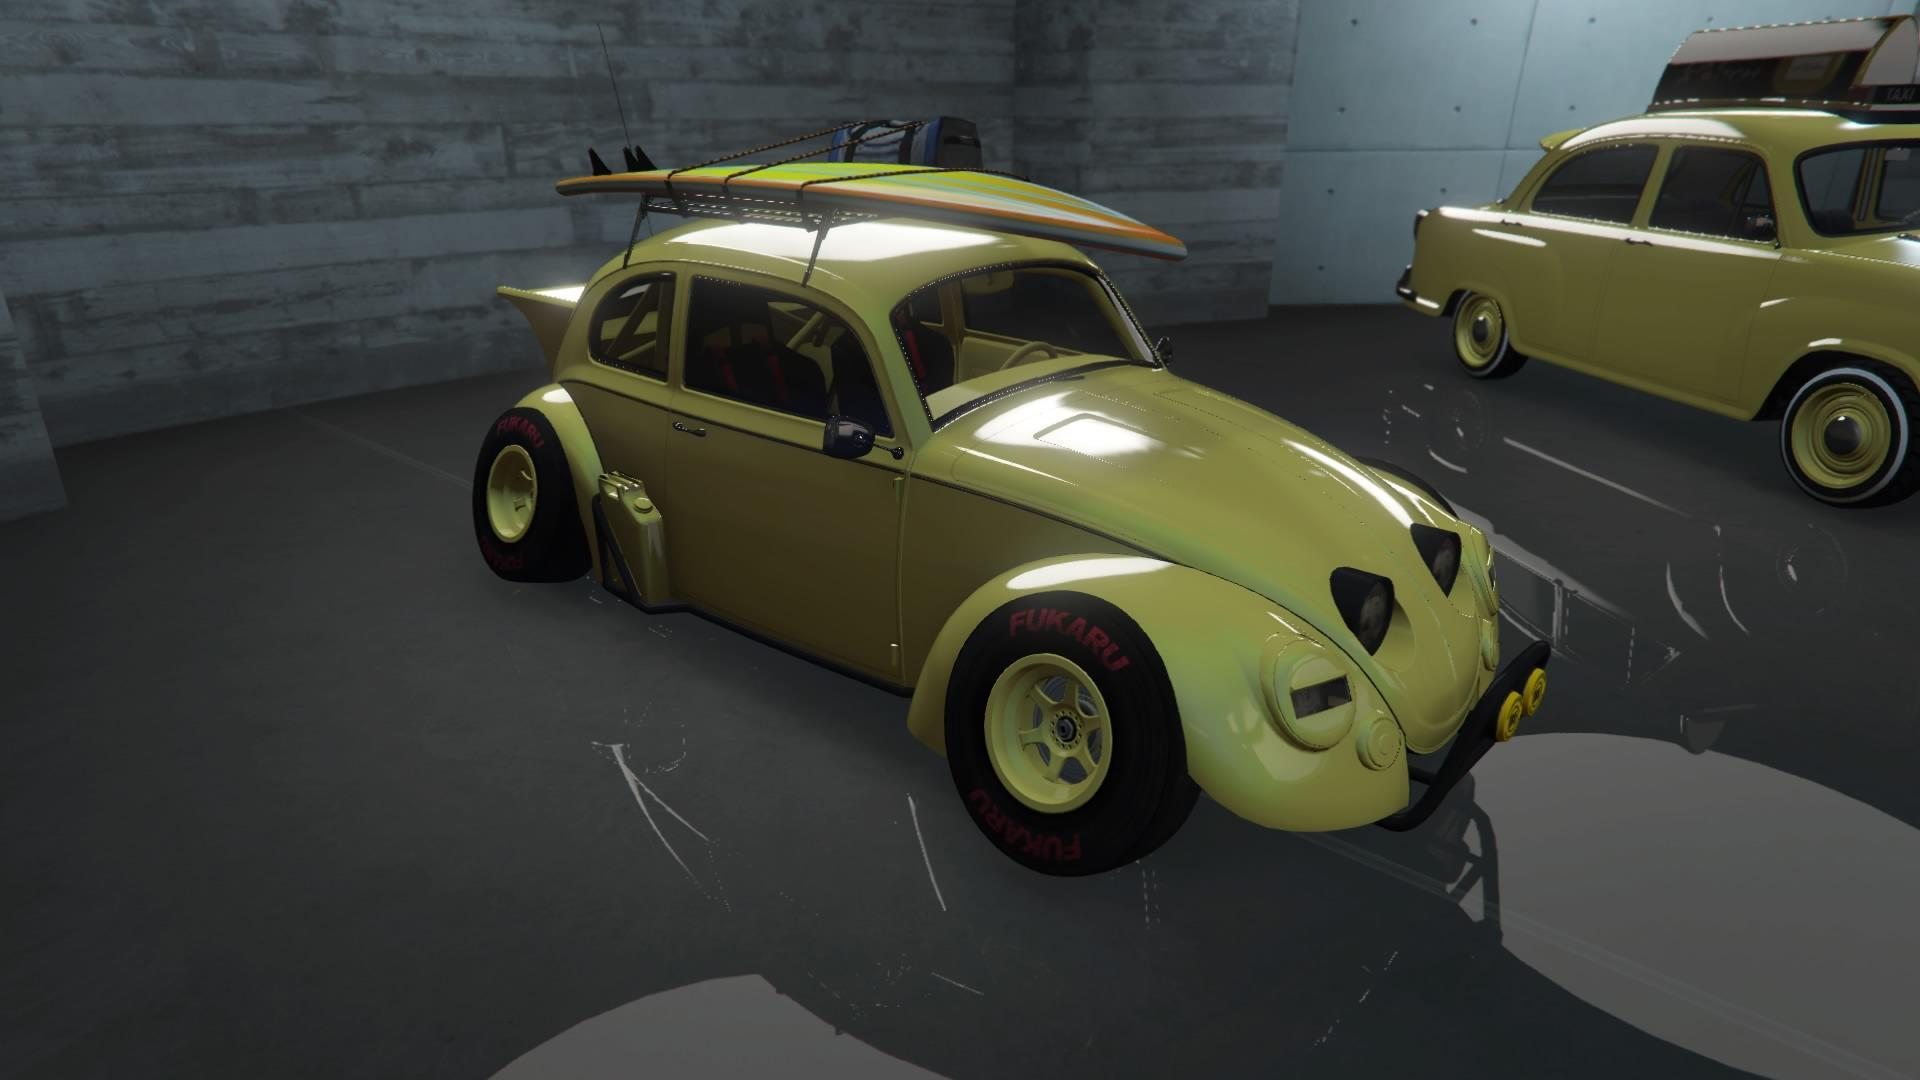 Weevil - Light yellow paint and rim color.